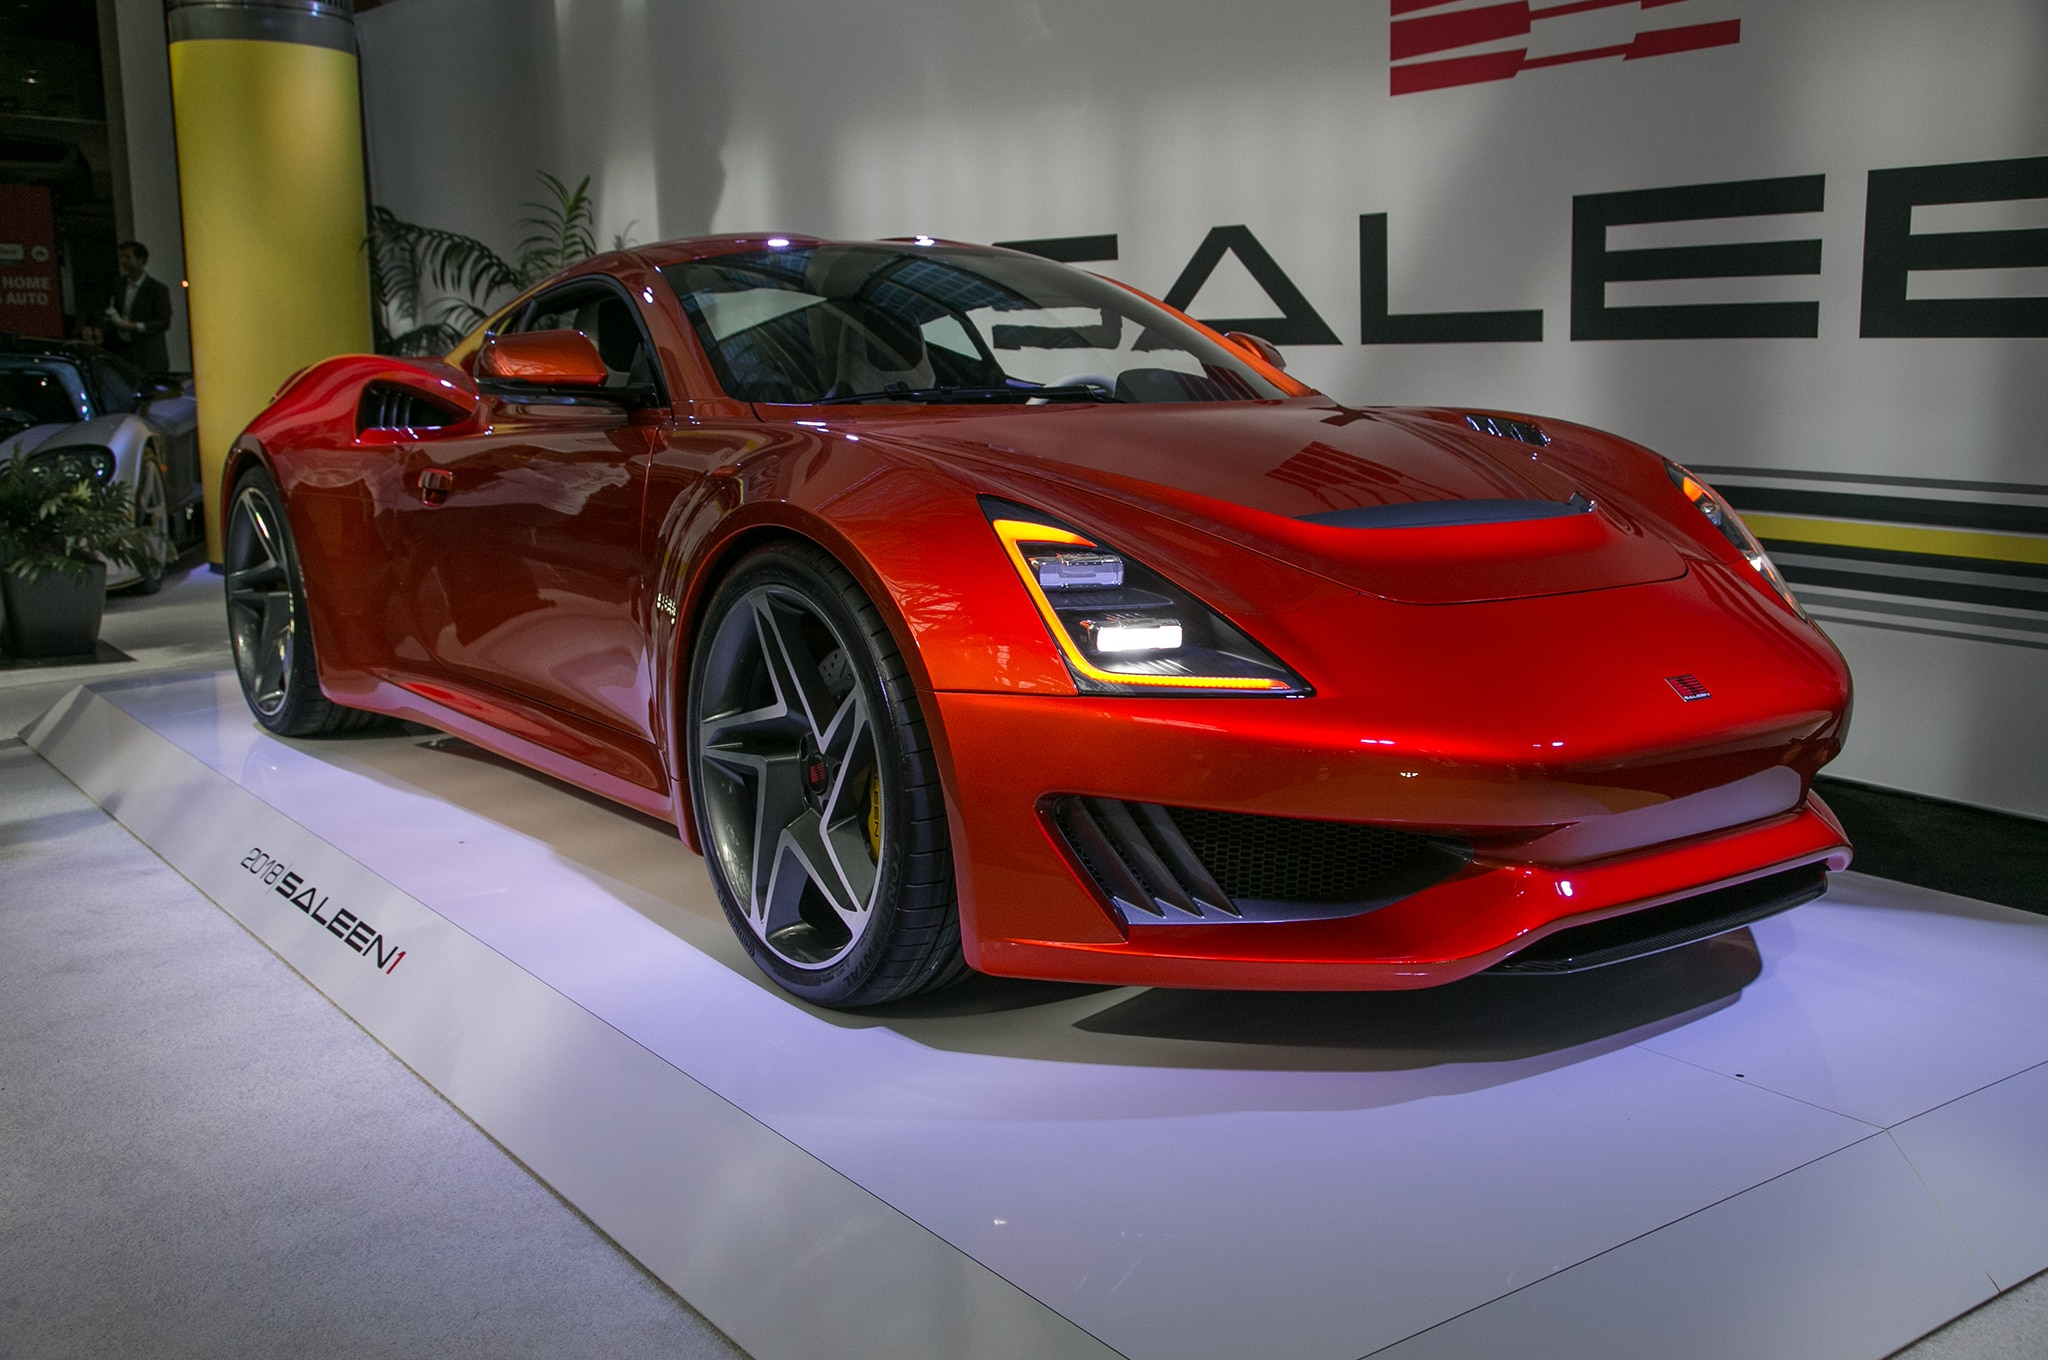 2019 Mustang Gt 0 60 >> 2019 Saleen 1 Unveiled with a $100,000 Price Tag